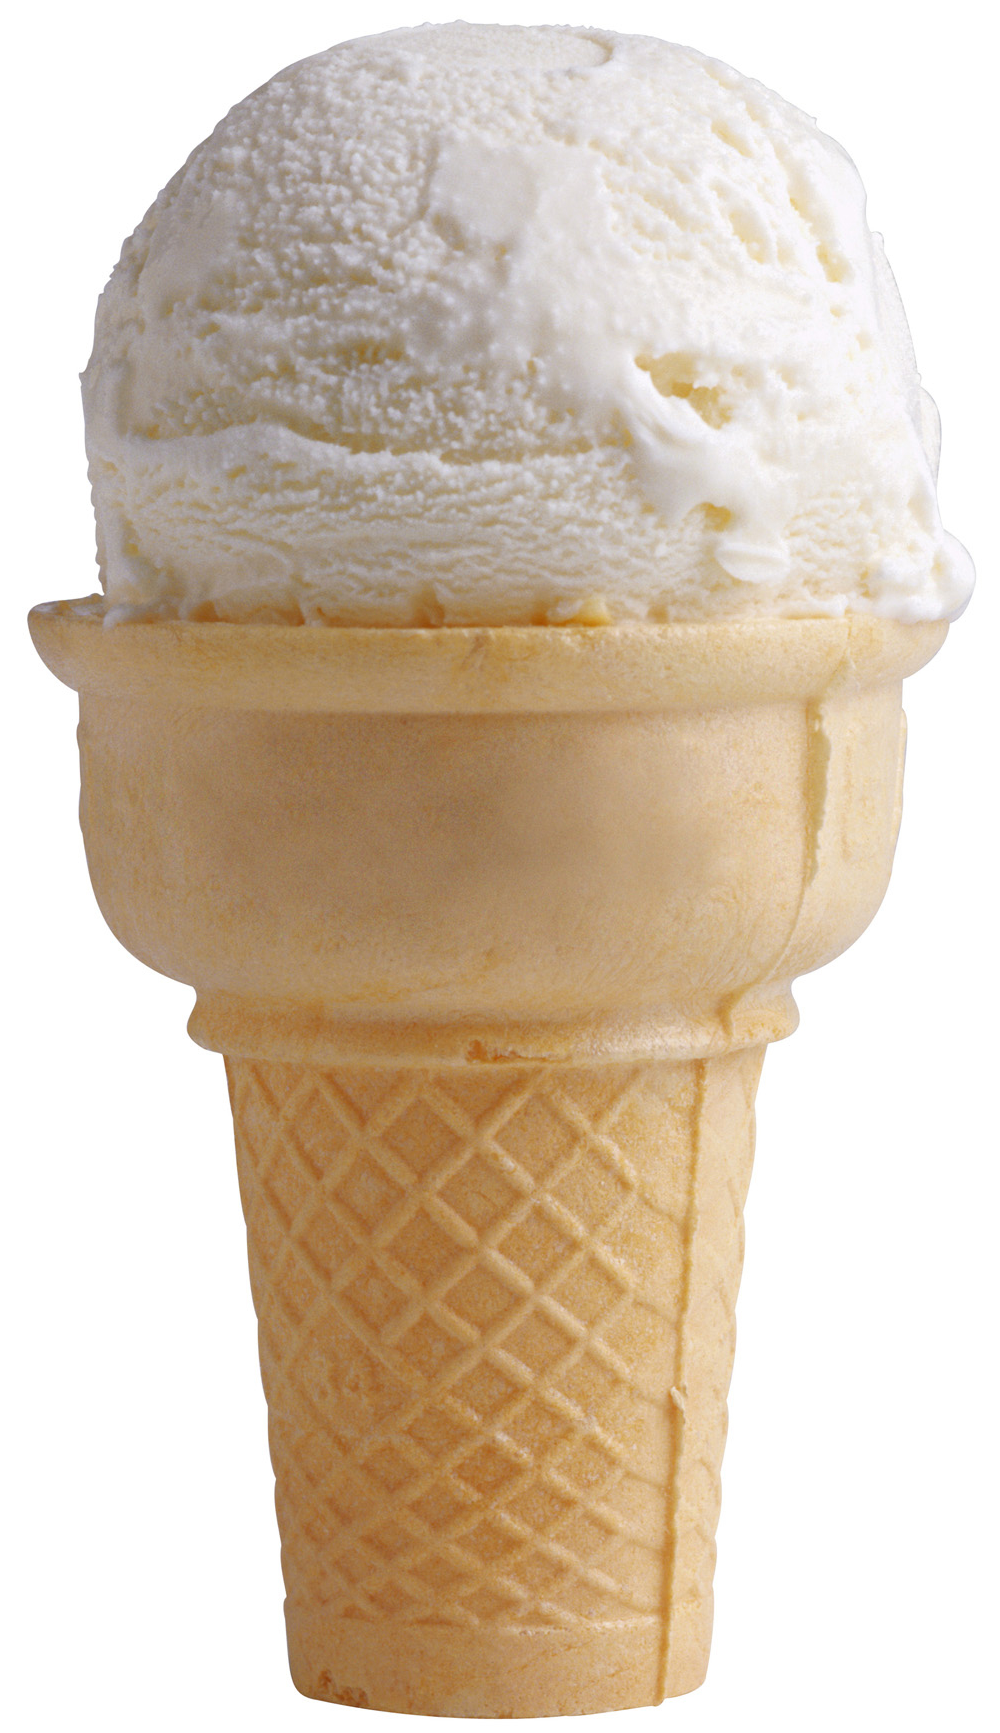 Ice Cream Png image #9405 - Ice Cream PNG